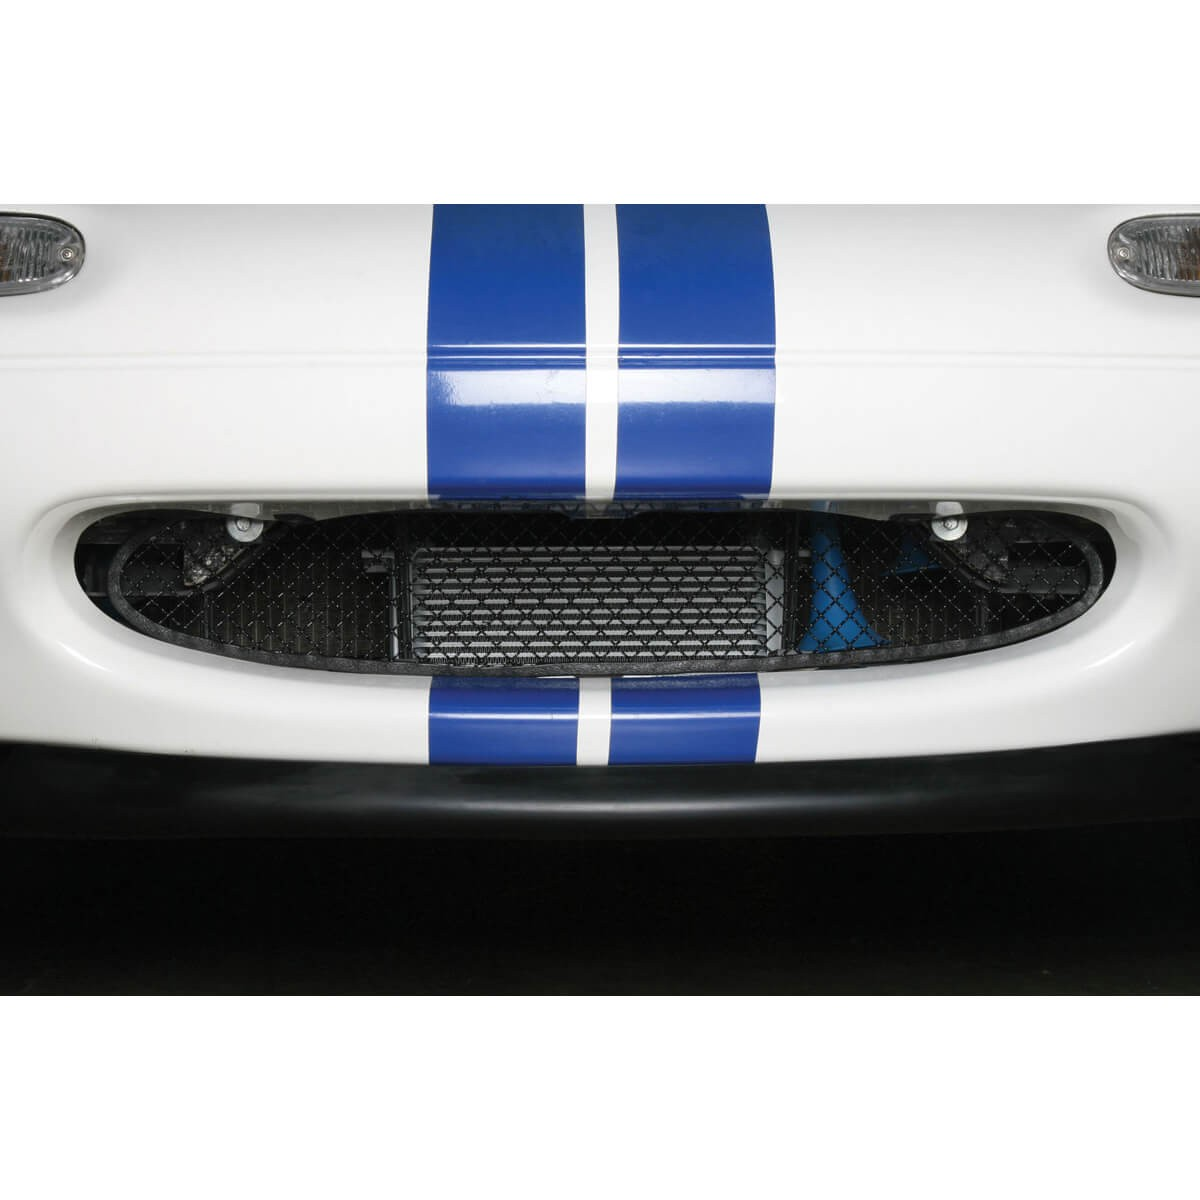 MX5 Miata MK2.5 Perfect Fit Woven Silver Poled Stainless Steel Car Front Radiator Mesh Grill Grille 2001-2005